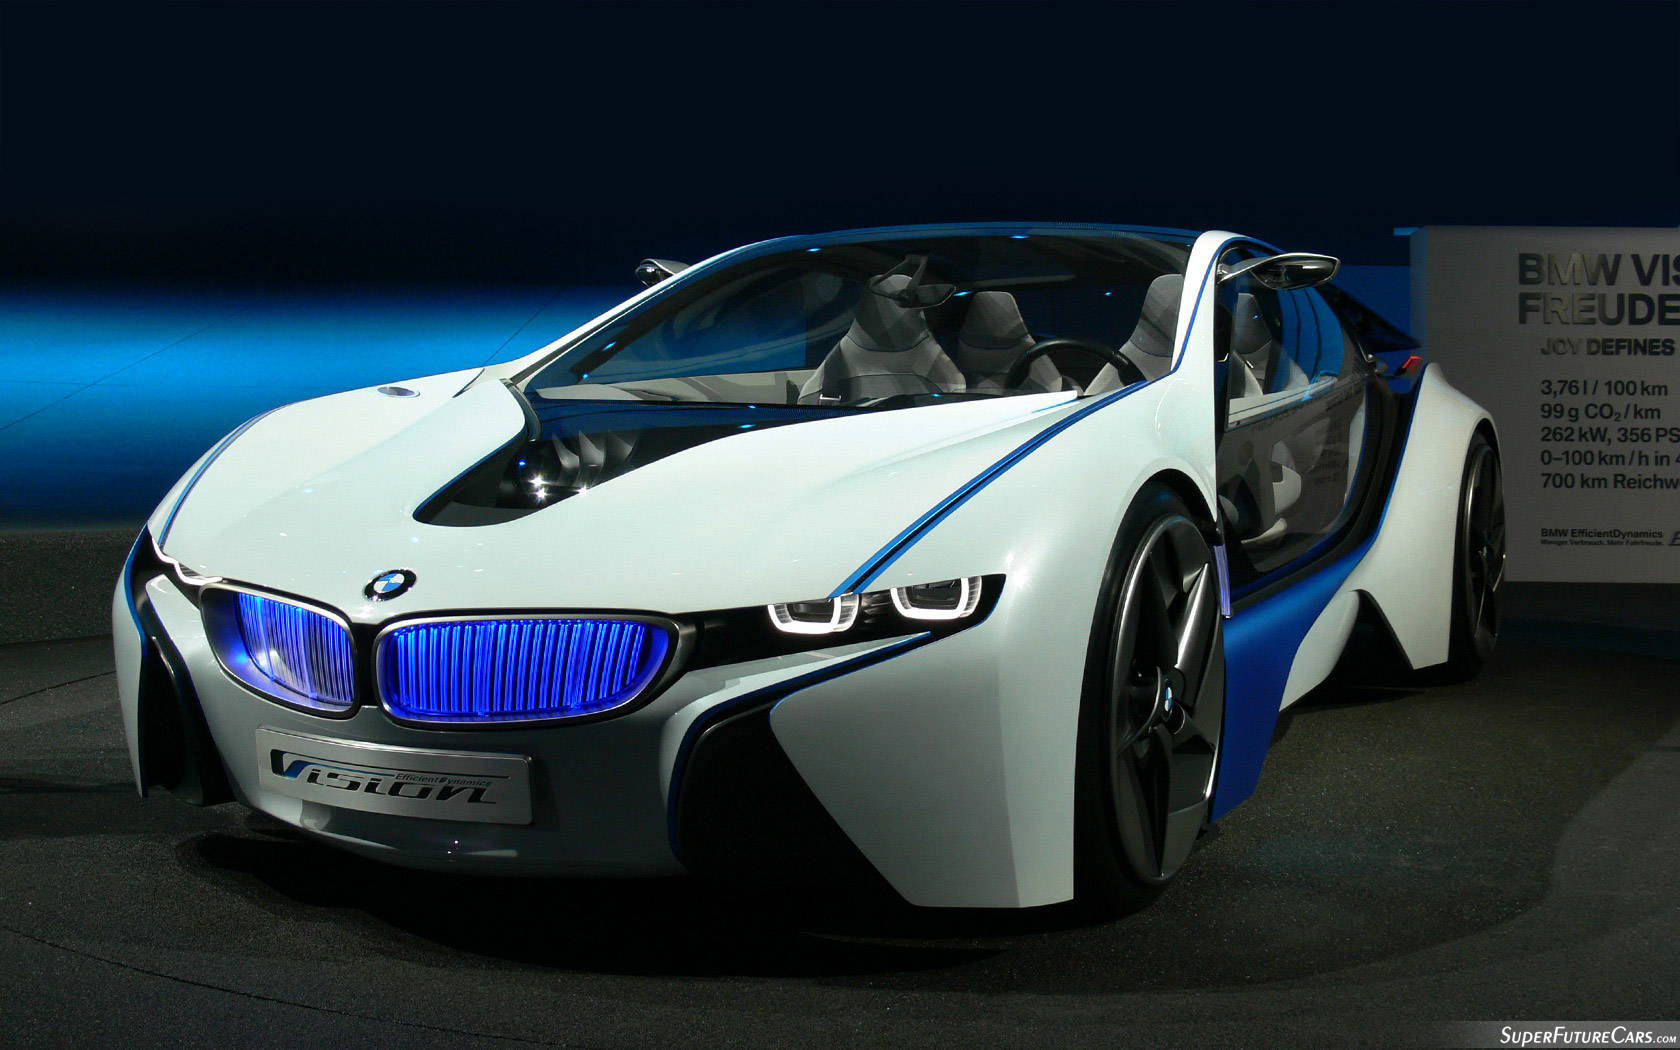 BMW i8 vision efficient dynamics image converter free download